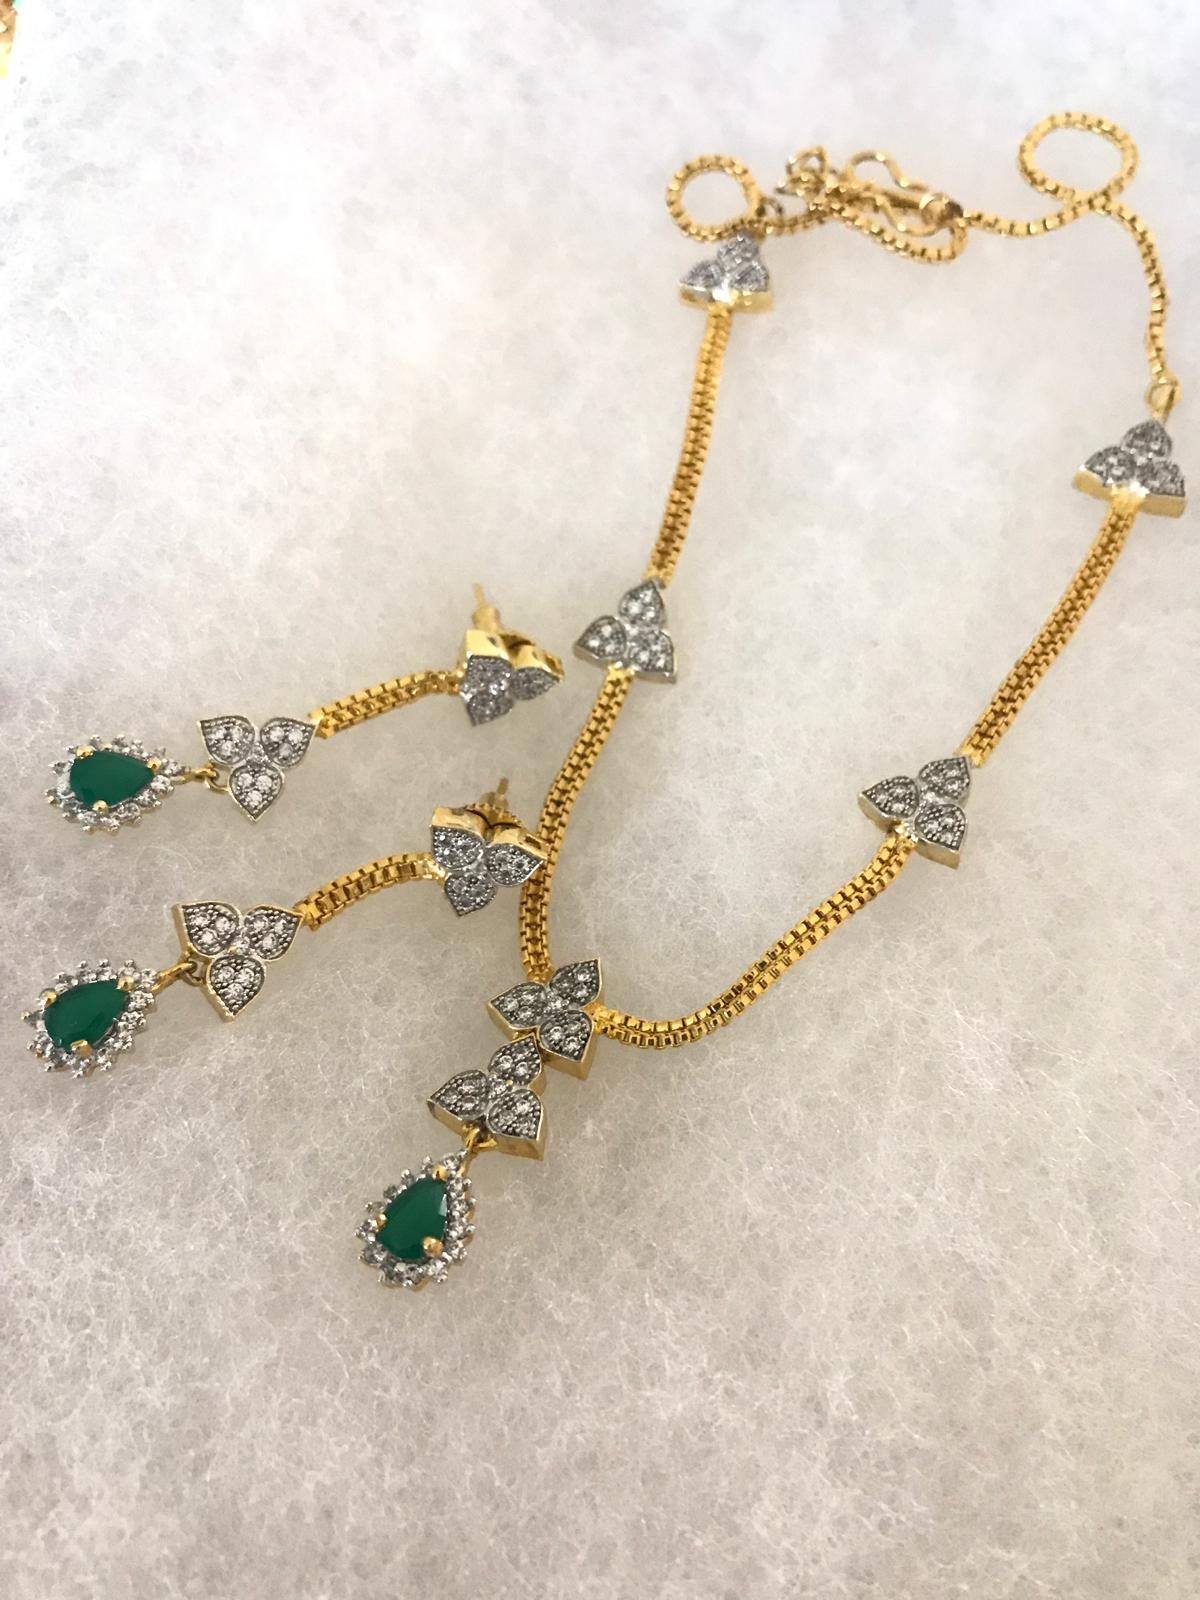 Gold Matte Designer Chain Necklace Set with Matching Earrings with Green Stone